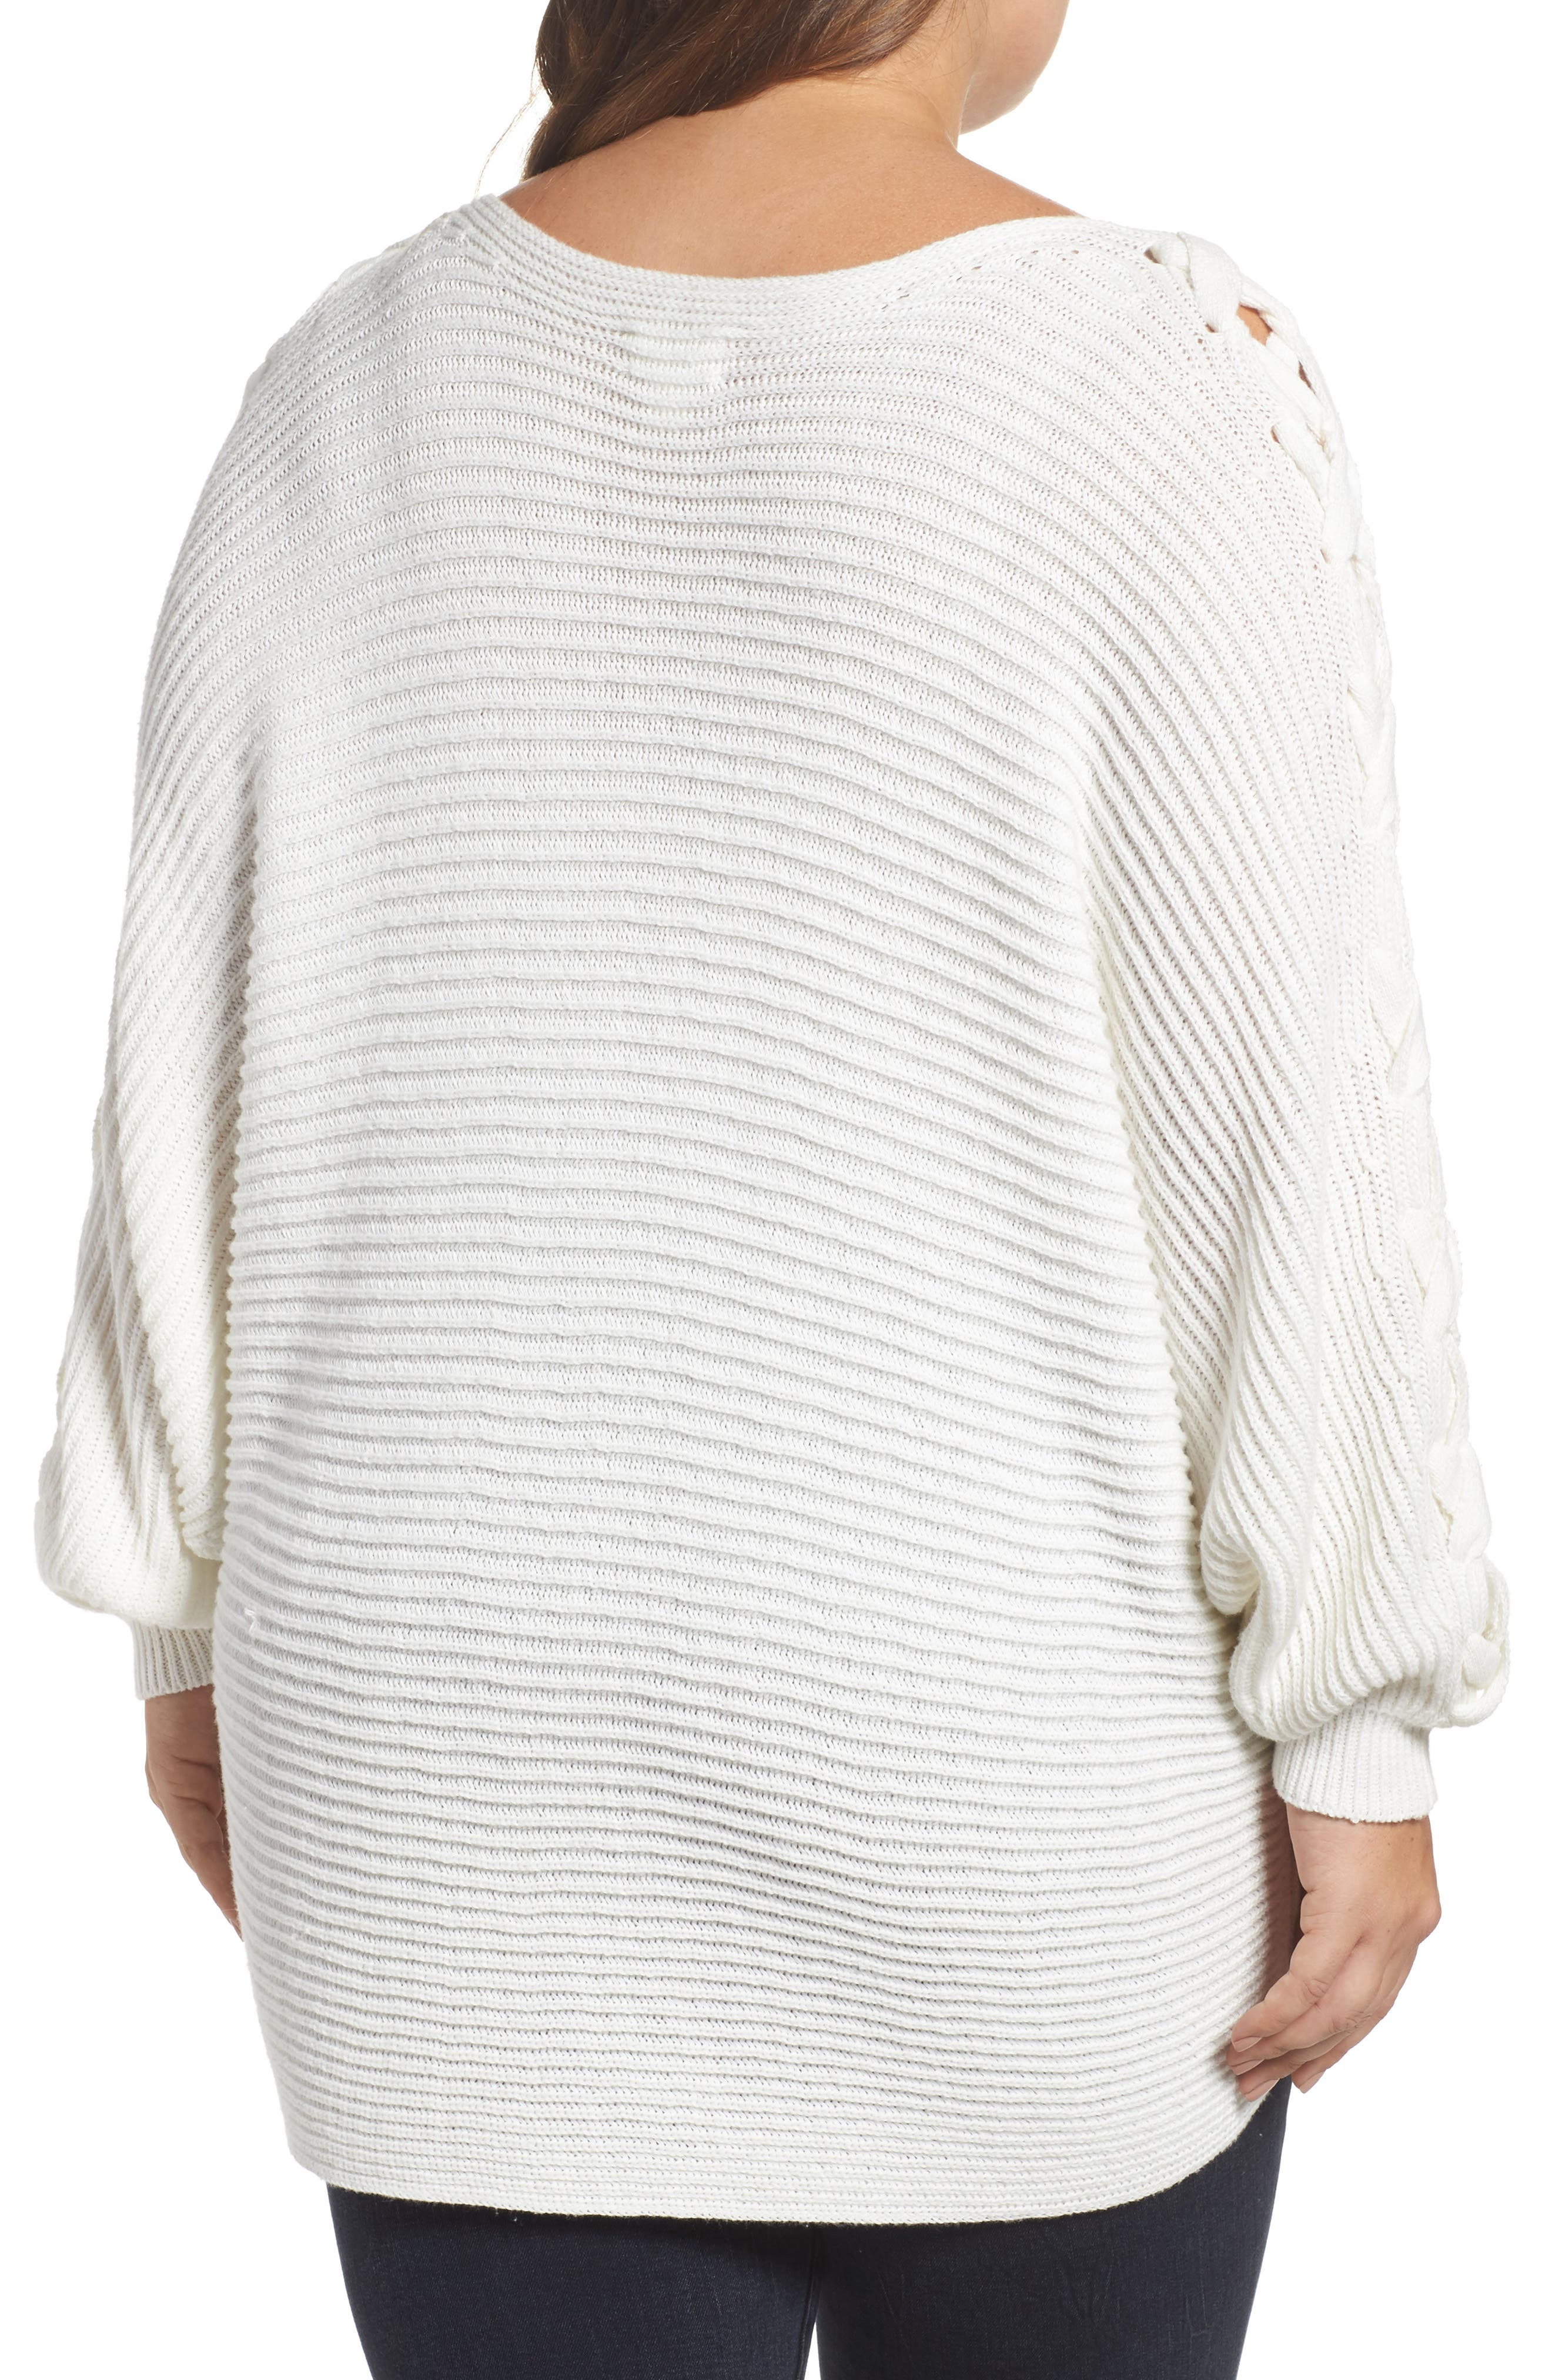 Lace-Up Sleeve Sweater,                             Alternate thumbnail 2, color,                             Ivory Cloud